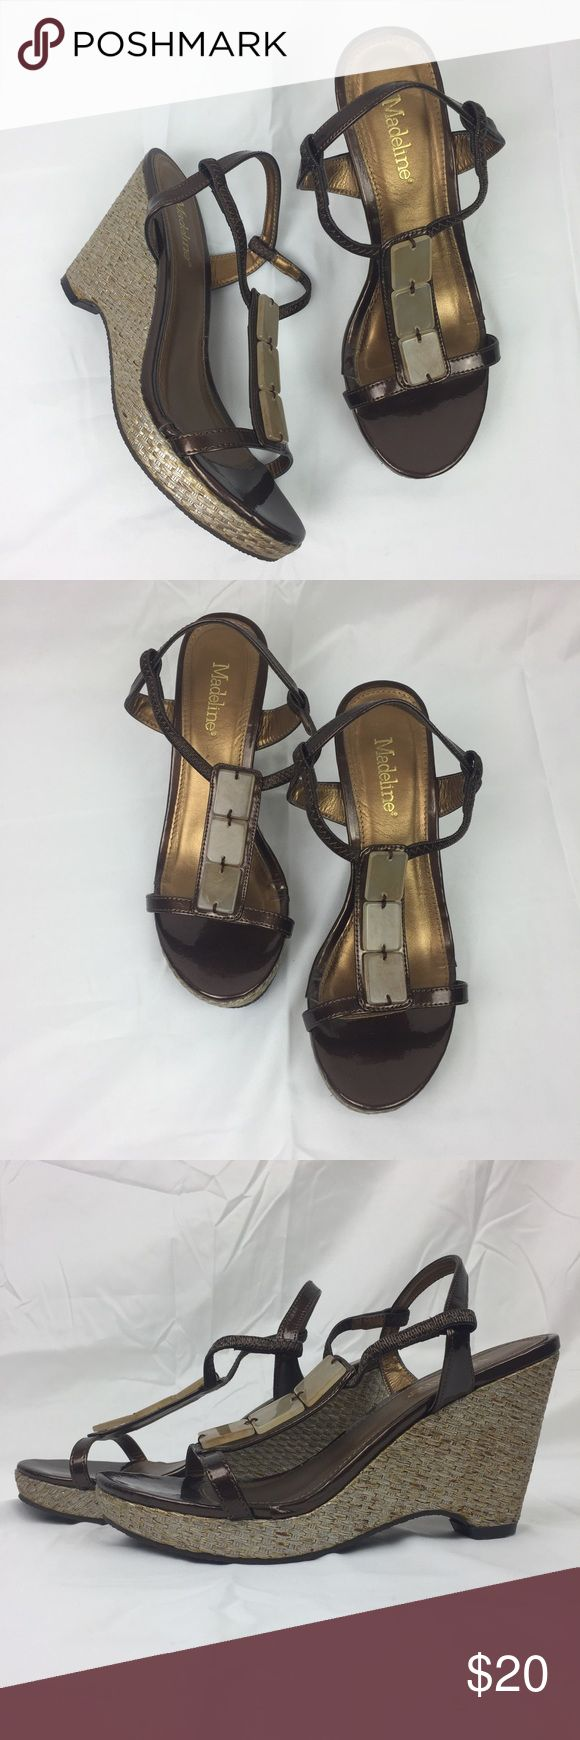 """Neutral wedge sandals Neutral wedge sandals. ~3.7"""" heel. Dark brown straps with neutral colored wedge. Wedge features woven detailing. Embellishment on foot. VGUC with minor wear on the heel of the sole. Madeline Shoes Wedges"""